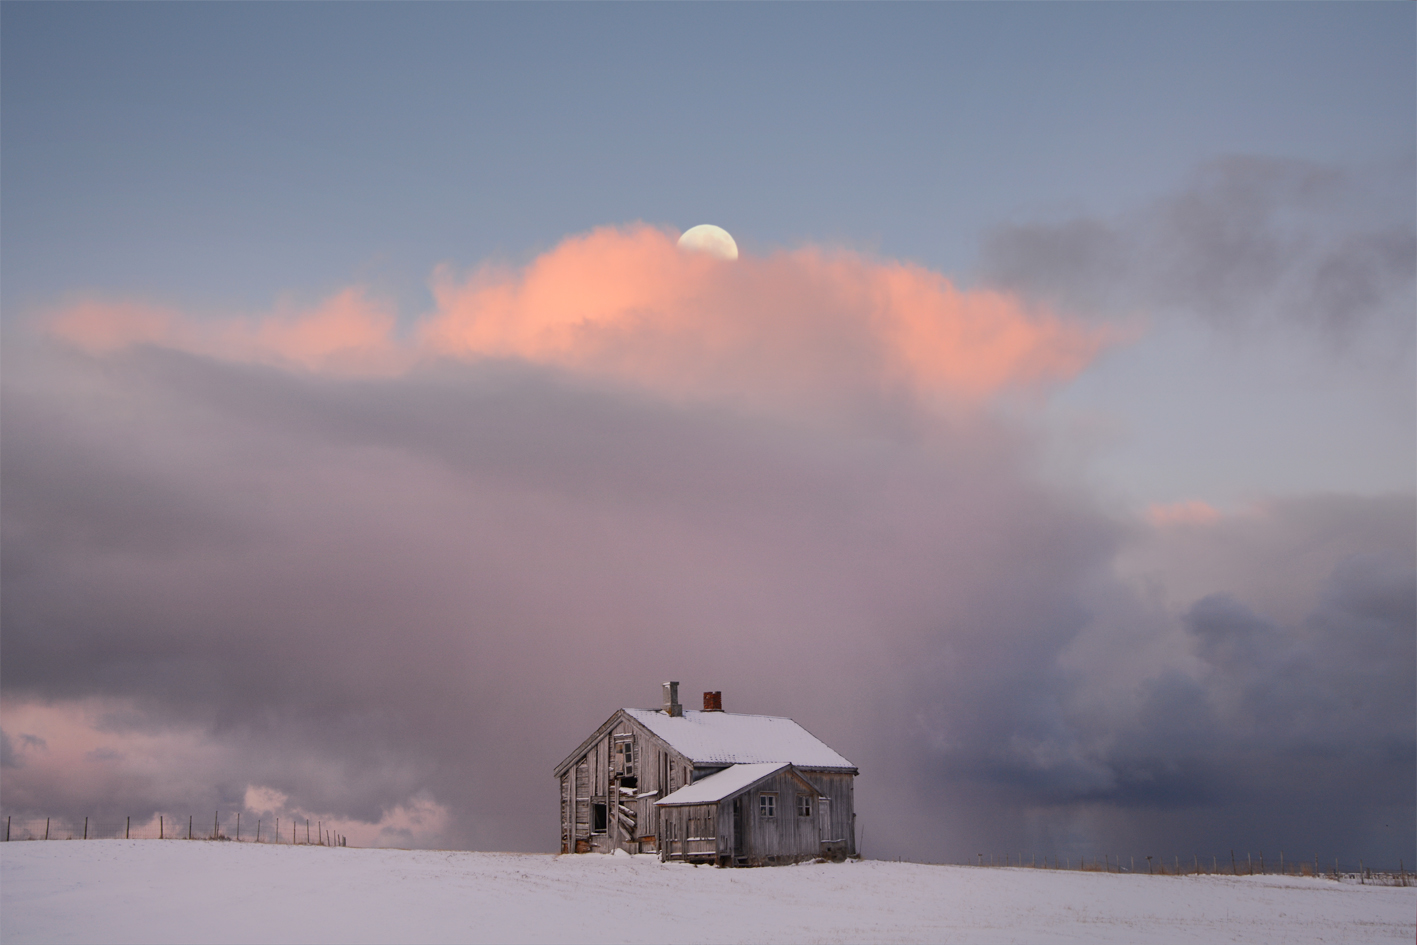 Captivating Moments With The Moon by Bjørg-Elise Tuppen